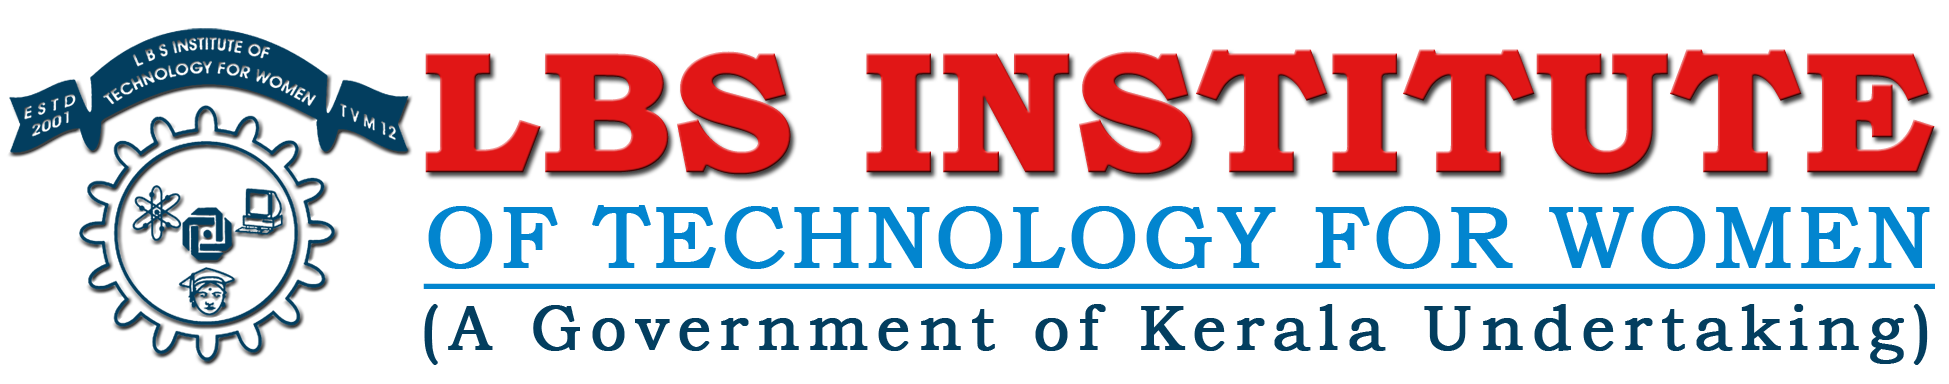 LBS Institute of Technology for Women